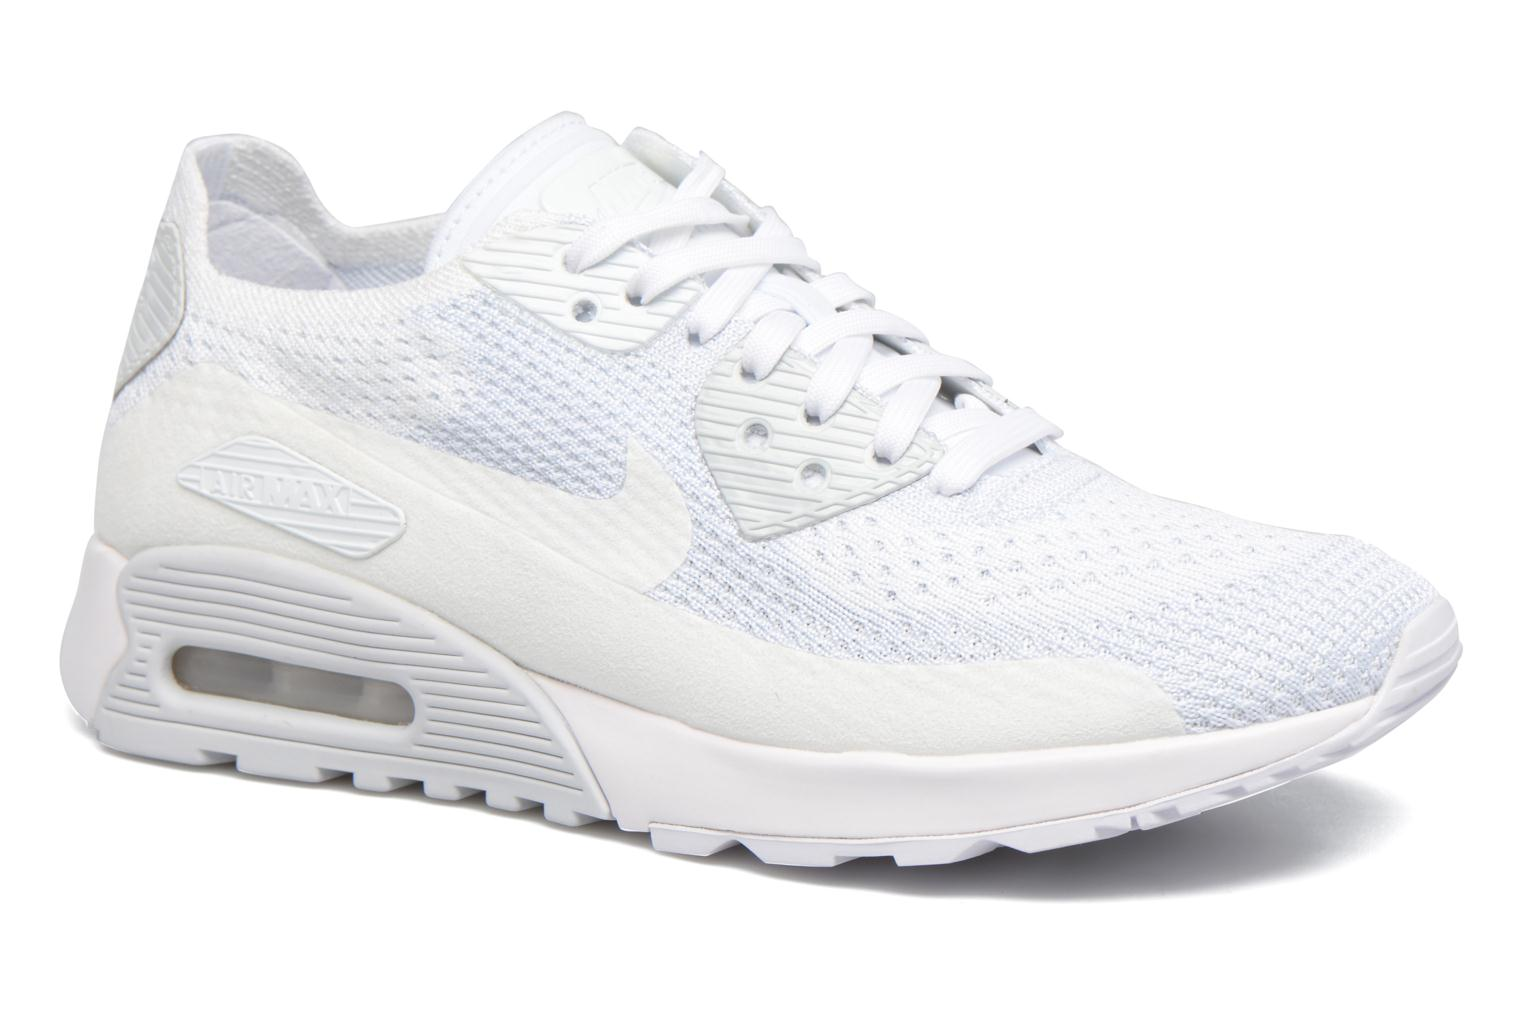 differently c60c6 a0e26 ... heren casual schoenen wit exj96412a d118b 5dd09; uk sneakers nike w air  max 90 ultra 2.0 flyknit wit detail 92453 e5455